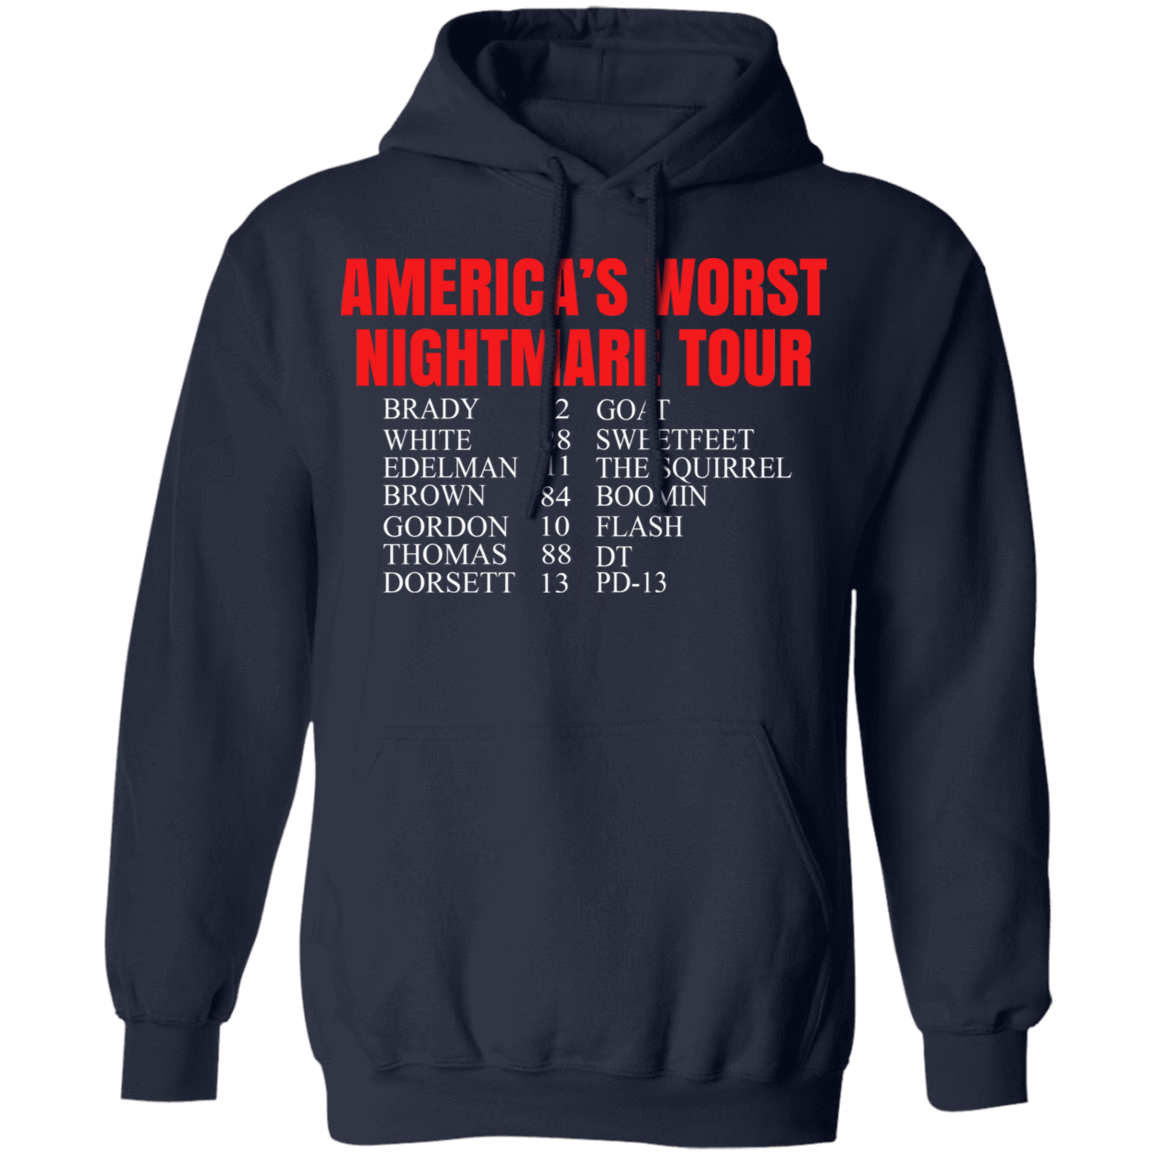 Bill's Plan America's Worst Nightmare Tour Brady Goat White Sweetfeet Edelman The Squirrel Shirt B T-Shirts, Hoodies, Tank 541-4742-81772828-23135 - Tee Ript